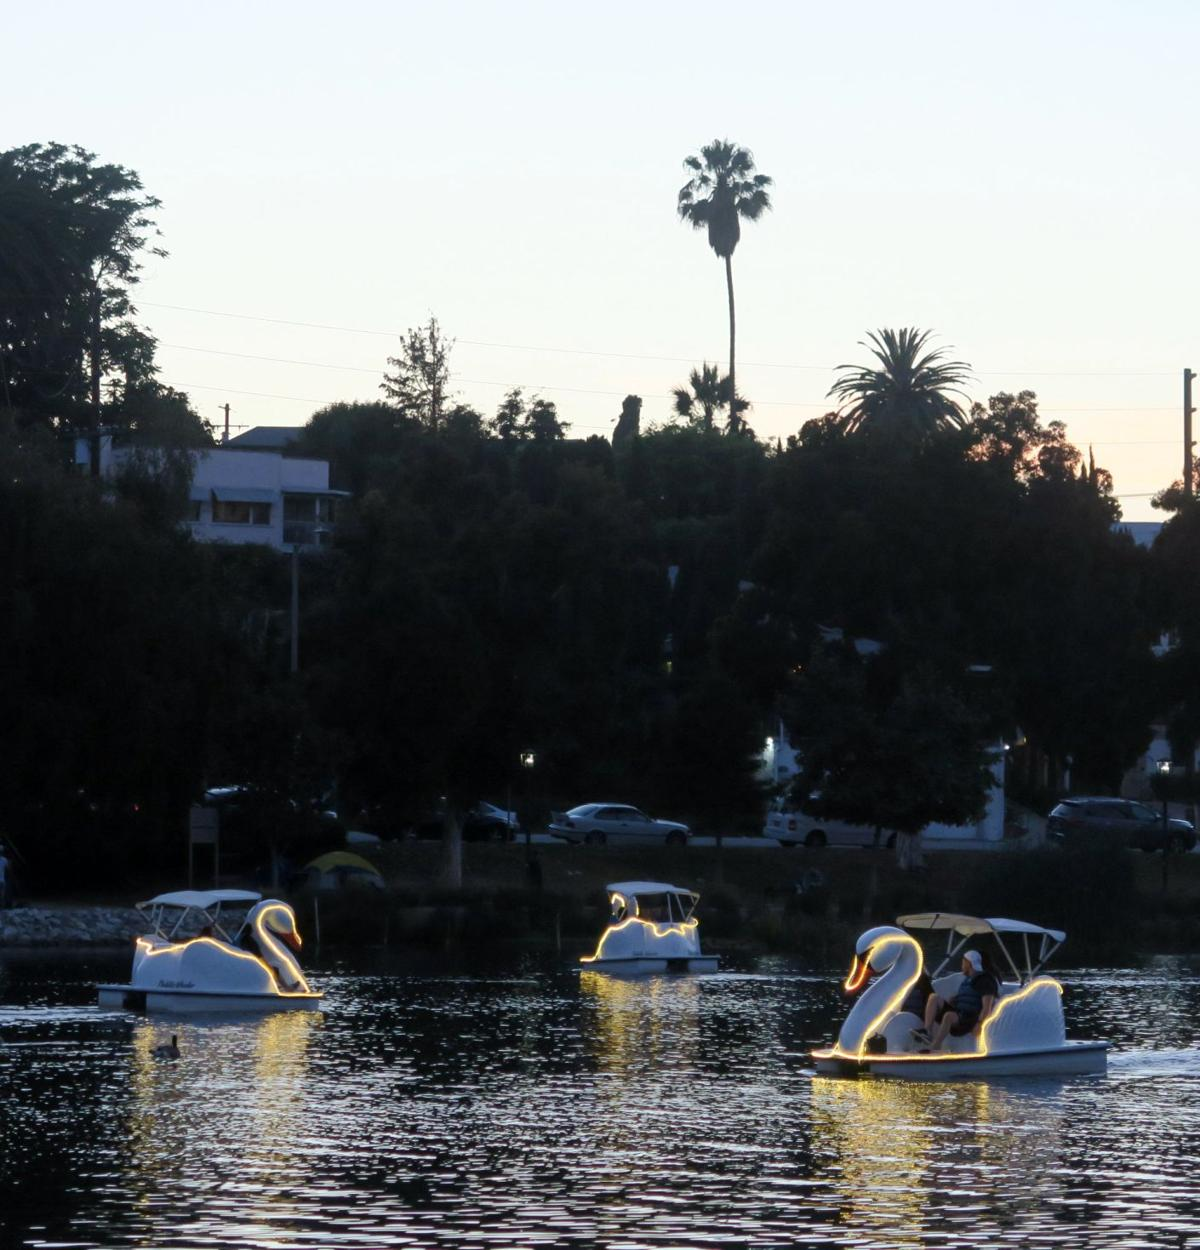 Echo Park Lake Swan Boats with lights 6-22-2019 8-43-24 PM.JPG